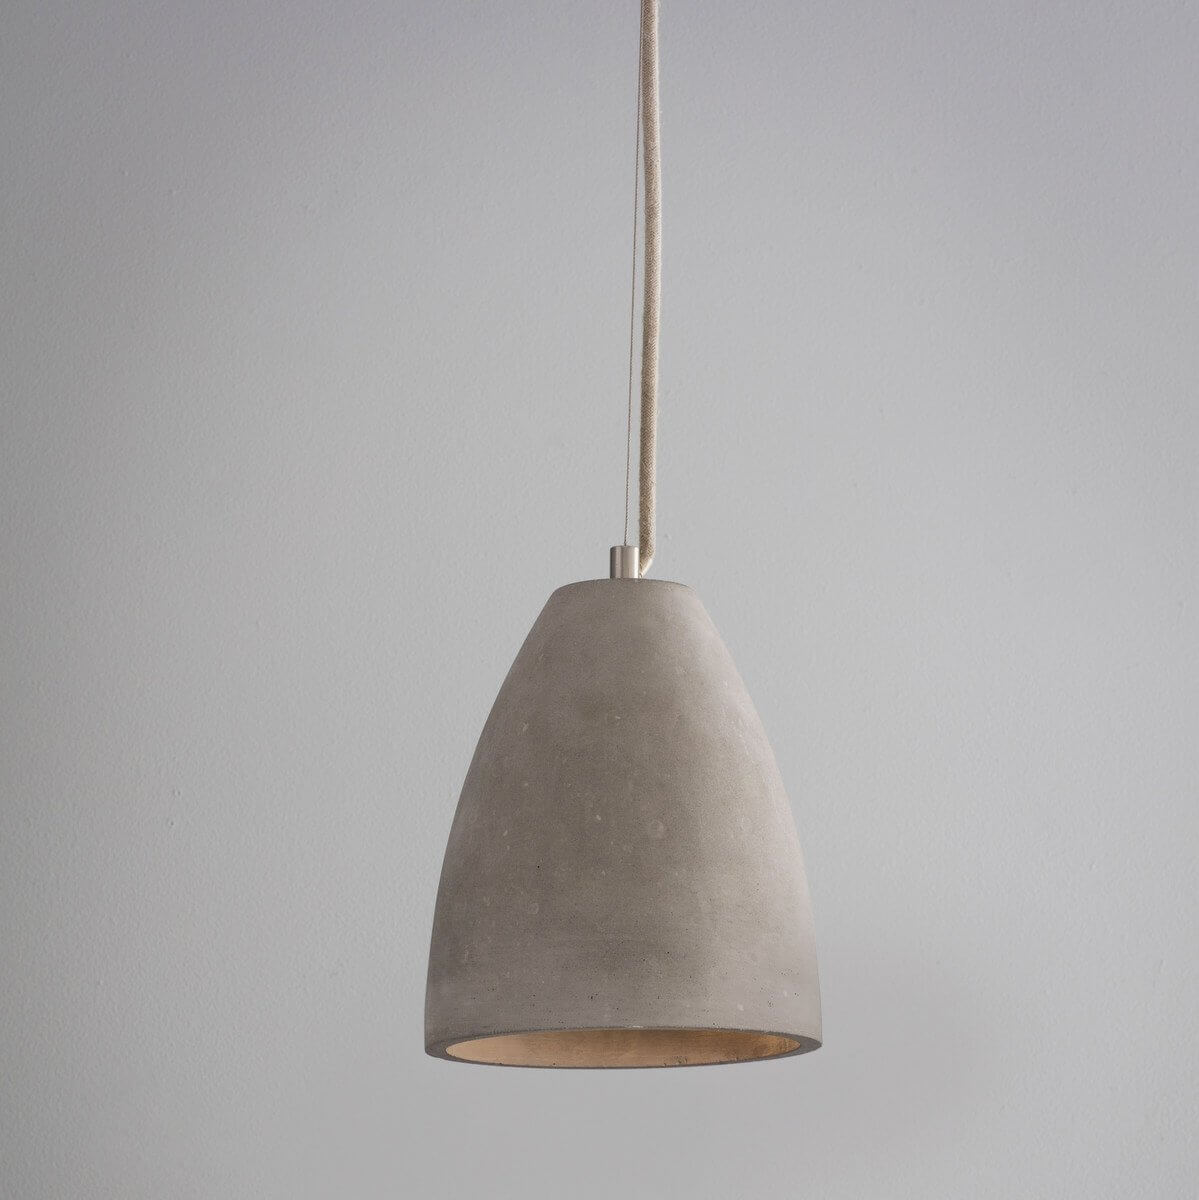 markaryd for dome by jakobsson agne light pendant hans